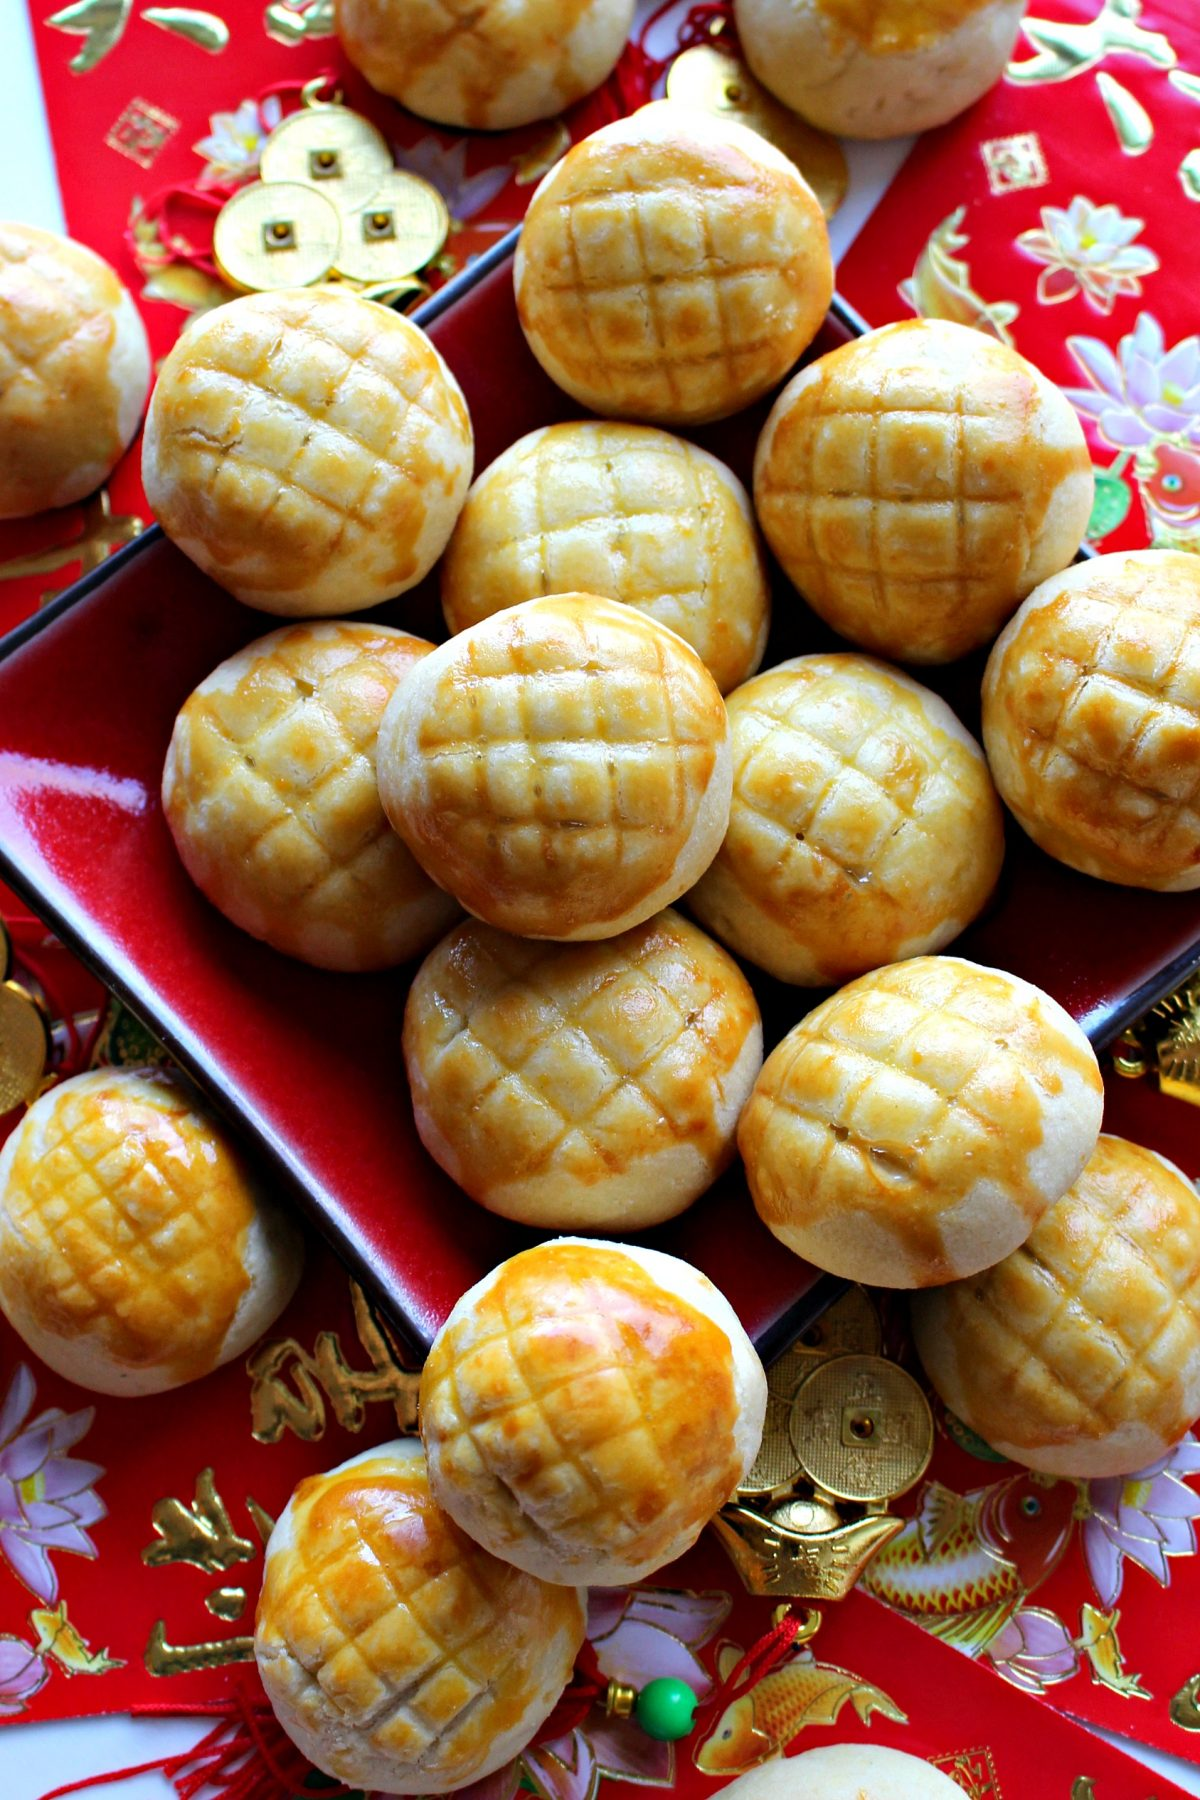 Ball shaped Pineapple Cookies on a red plate surrounded by  red and gold New Years decorations.